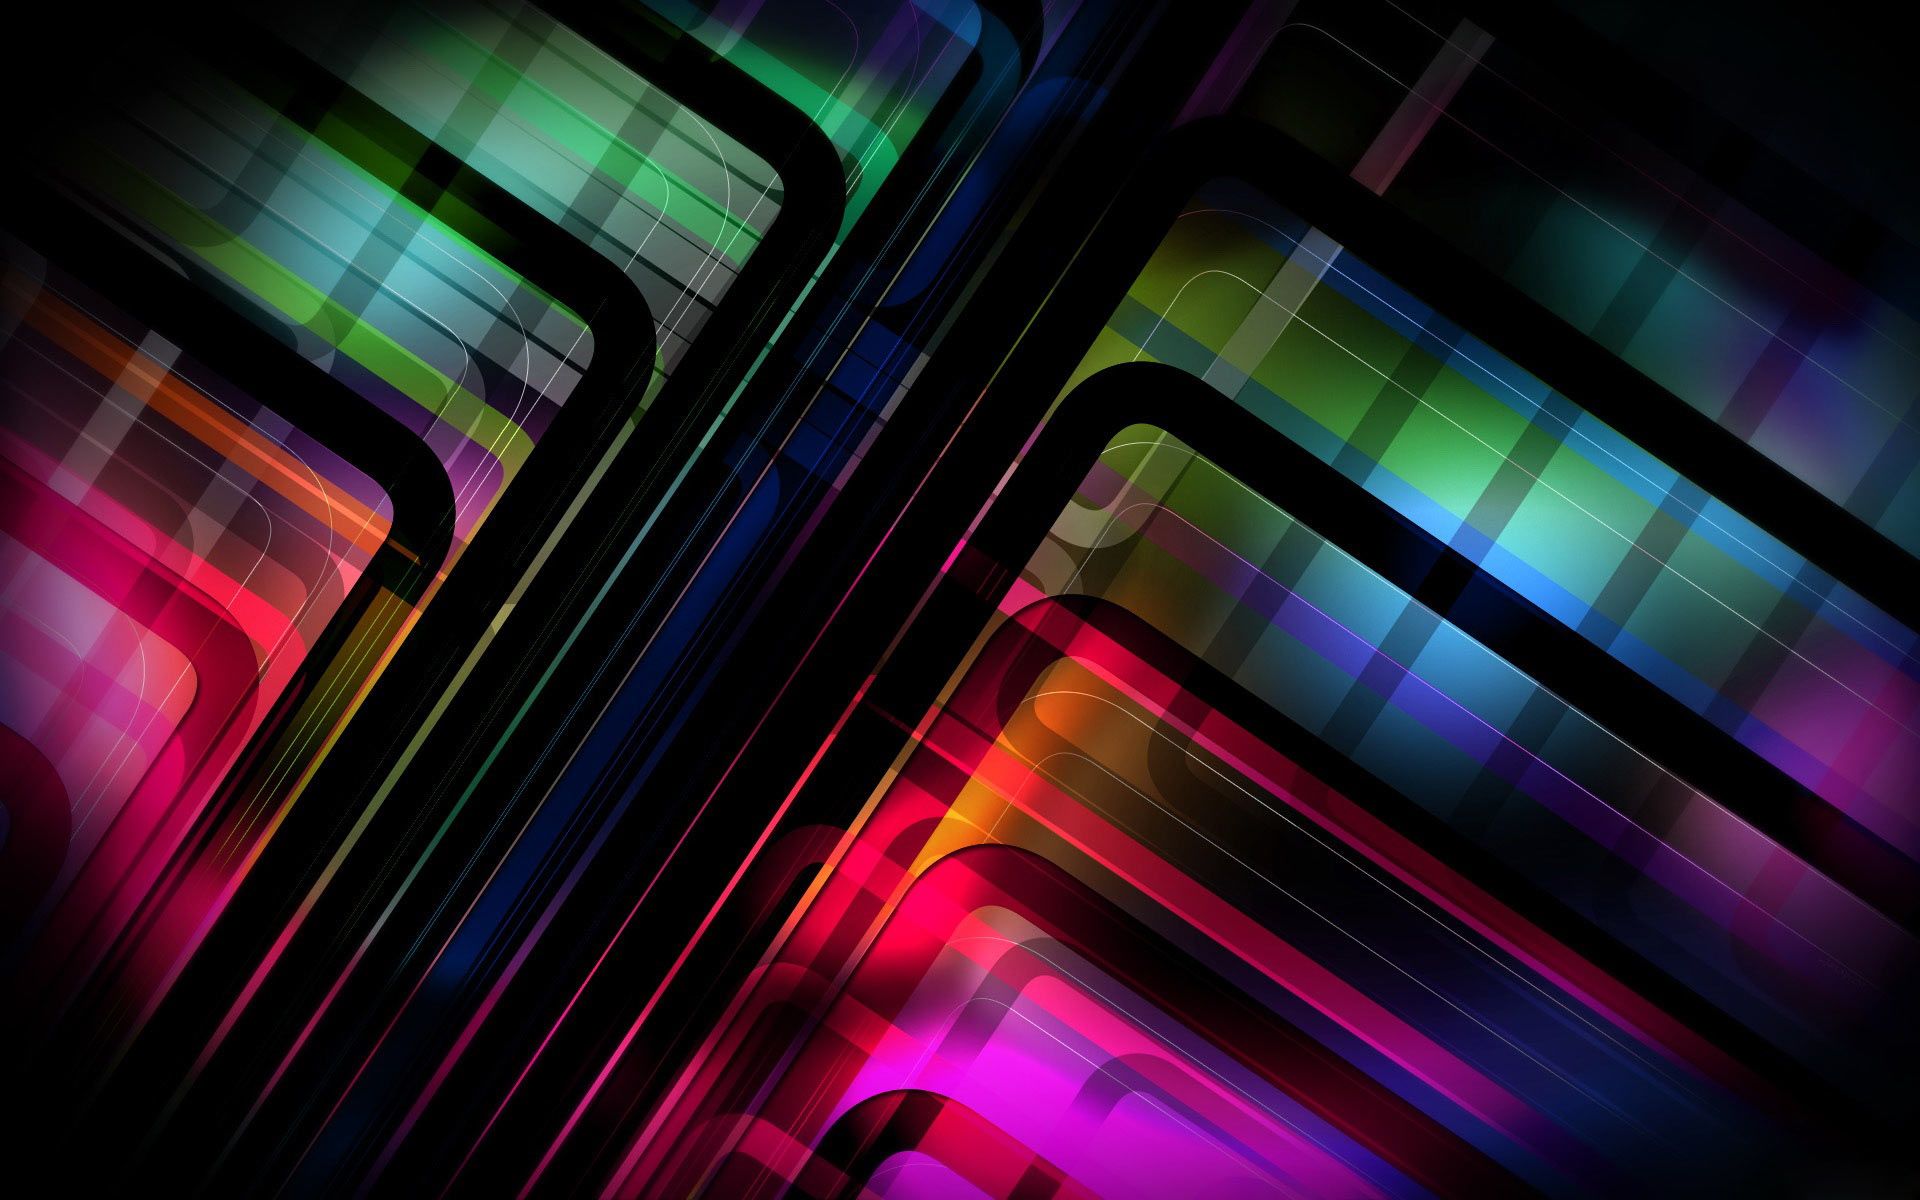 High Resolution Abstract Wallpaper: High Res Abstract Backgrounds Wallpaper